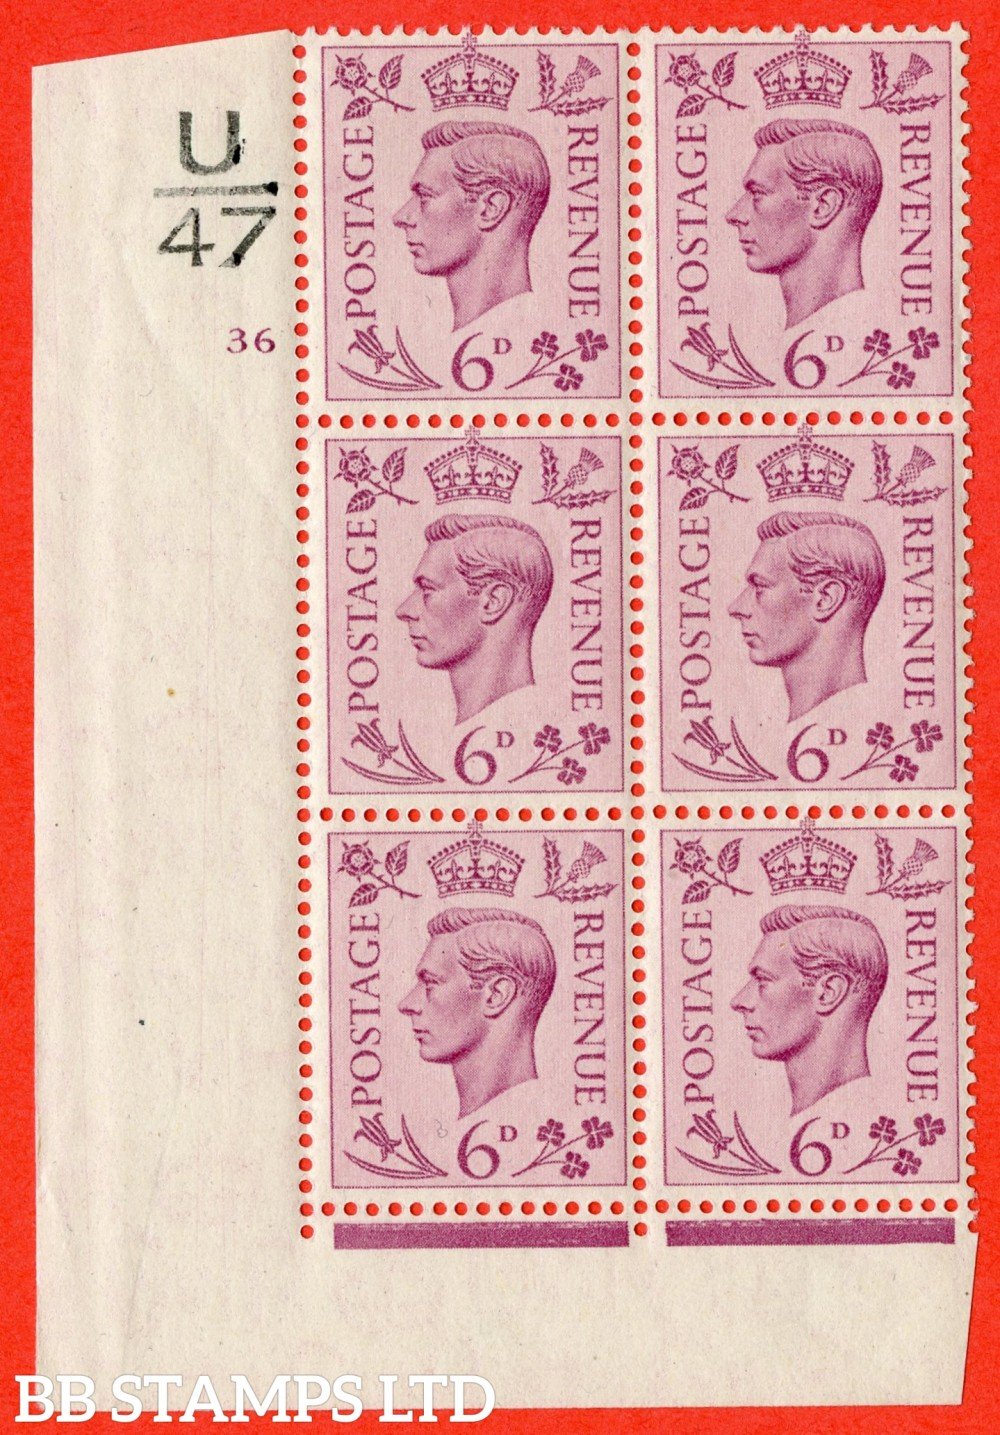 """SG. 470. Q22. 6d Purple. A fijne lightly mounted mint """" Control U47 cylinder 36 no dot """" control block of 6 with perf type 2 E/I."""